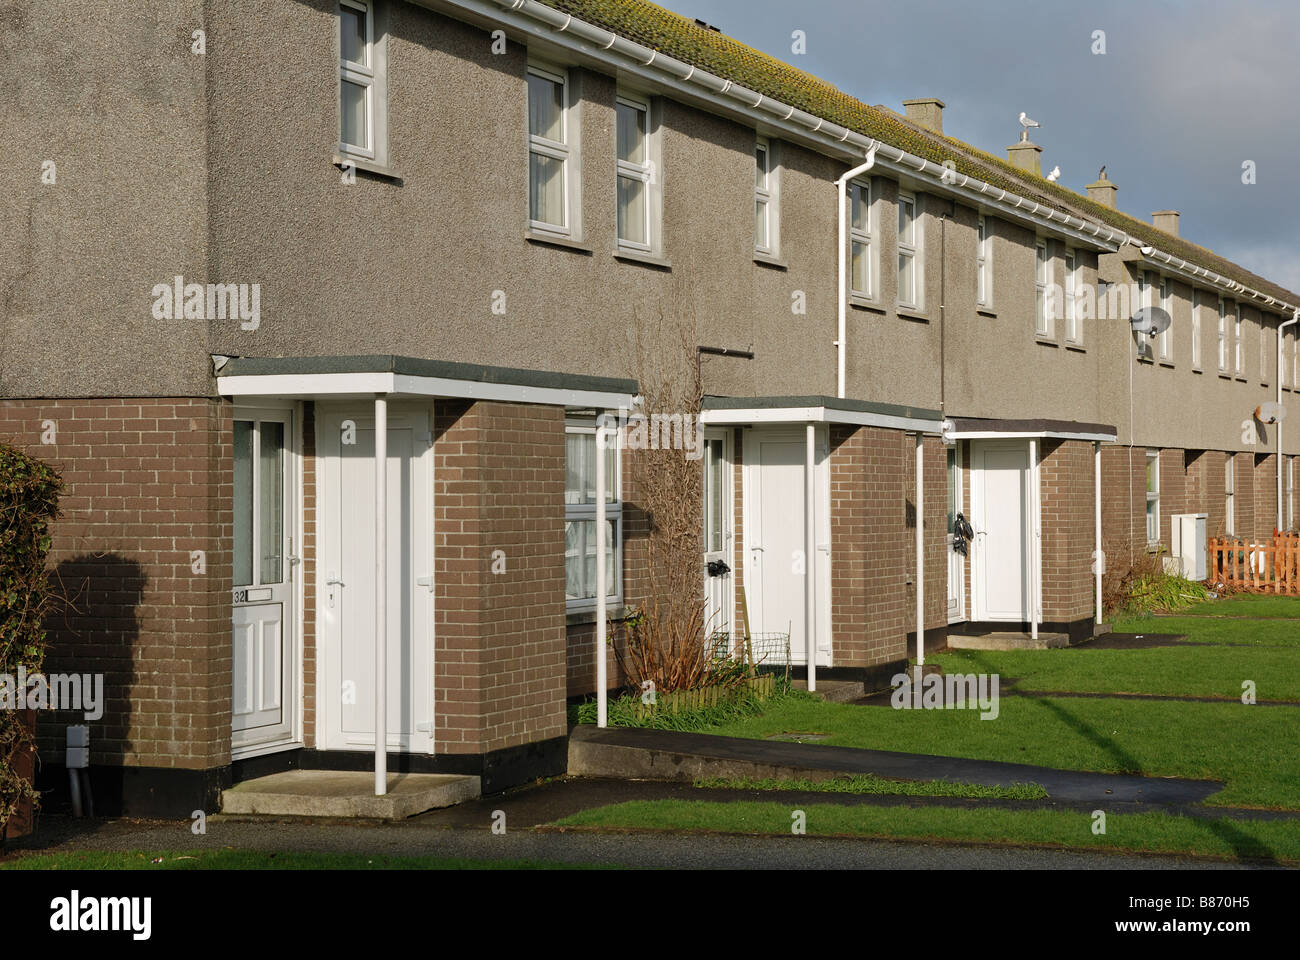 a row of council houses in kirkby, liverpool, uk - Stock Image